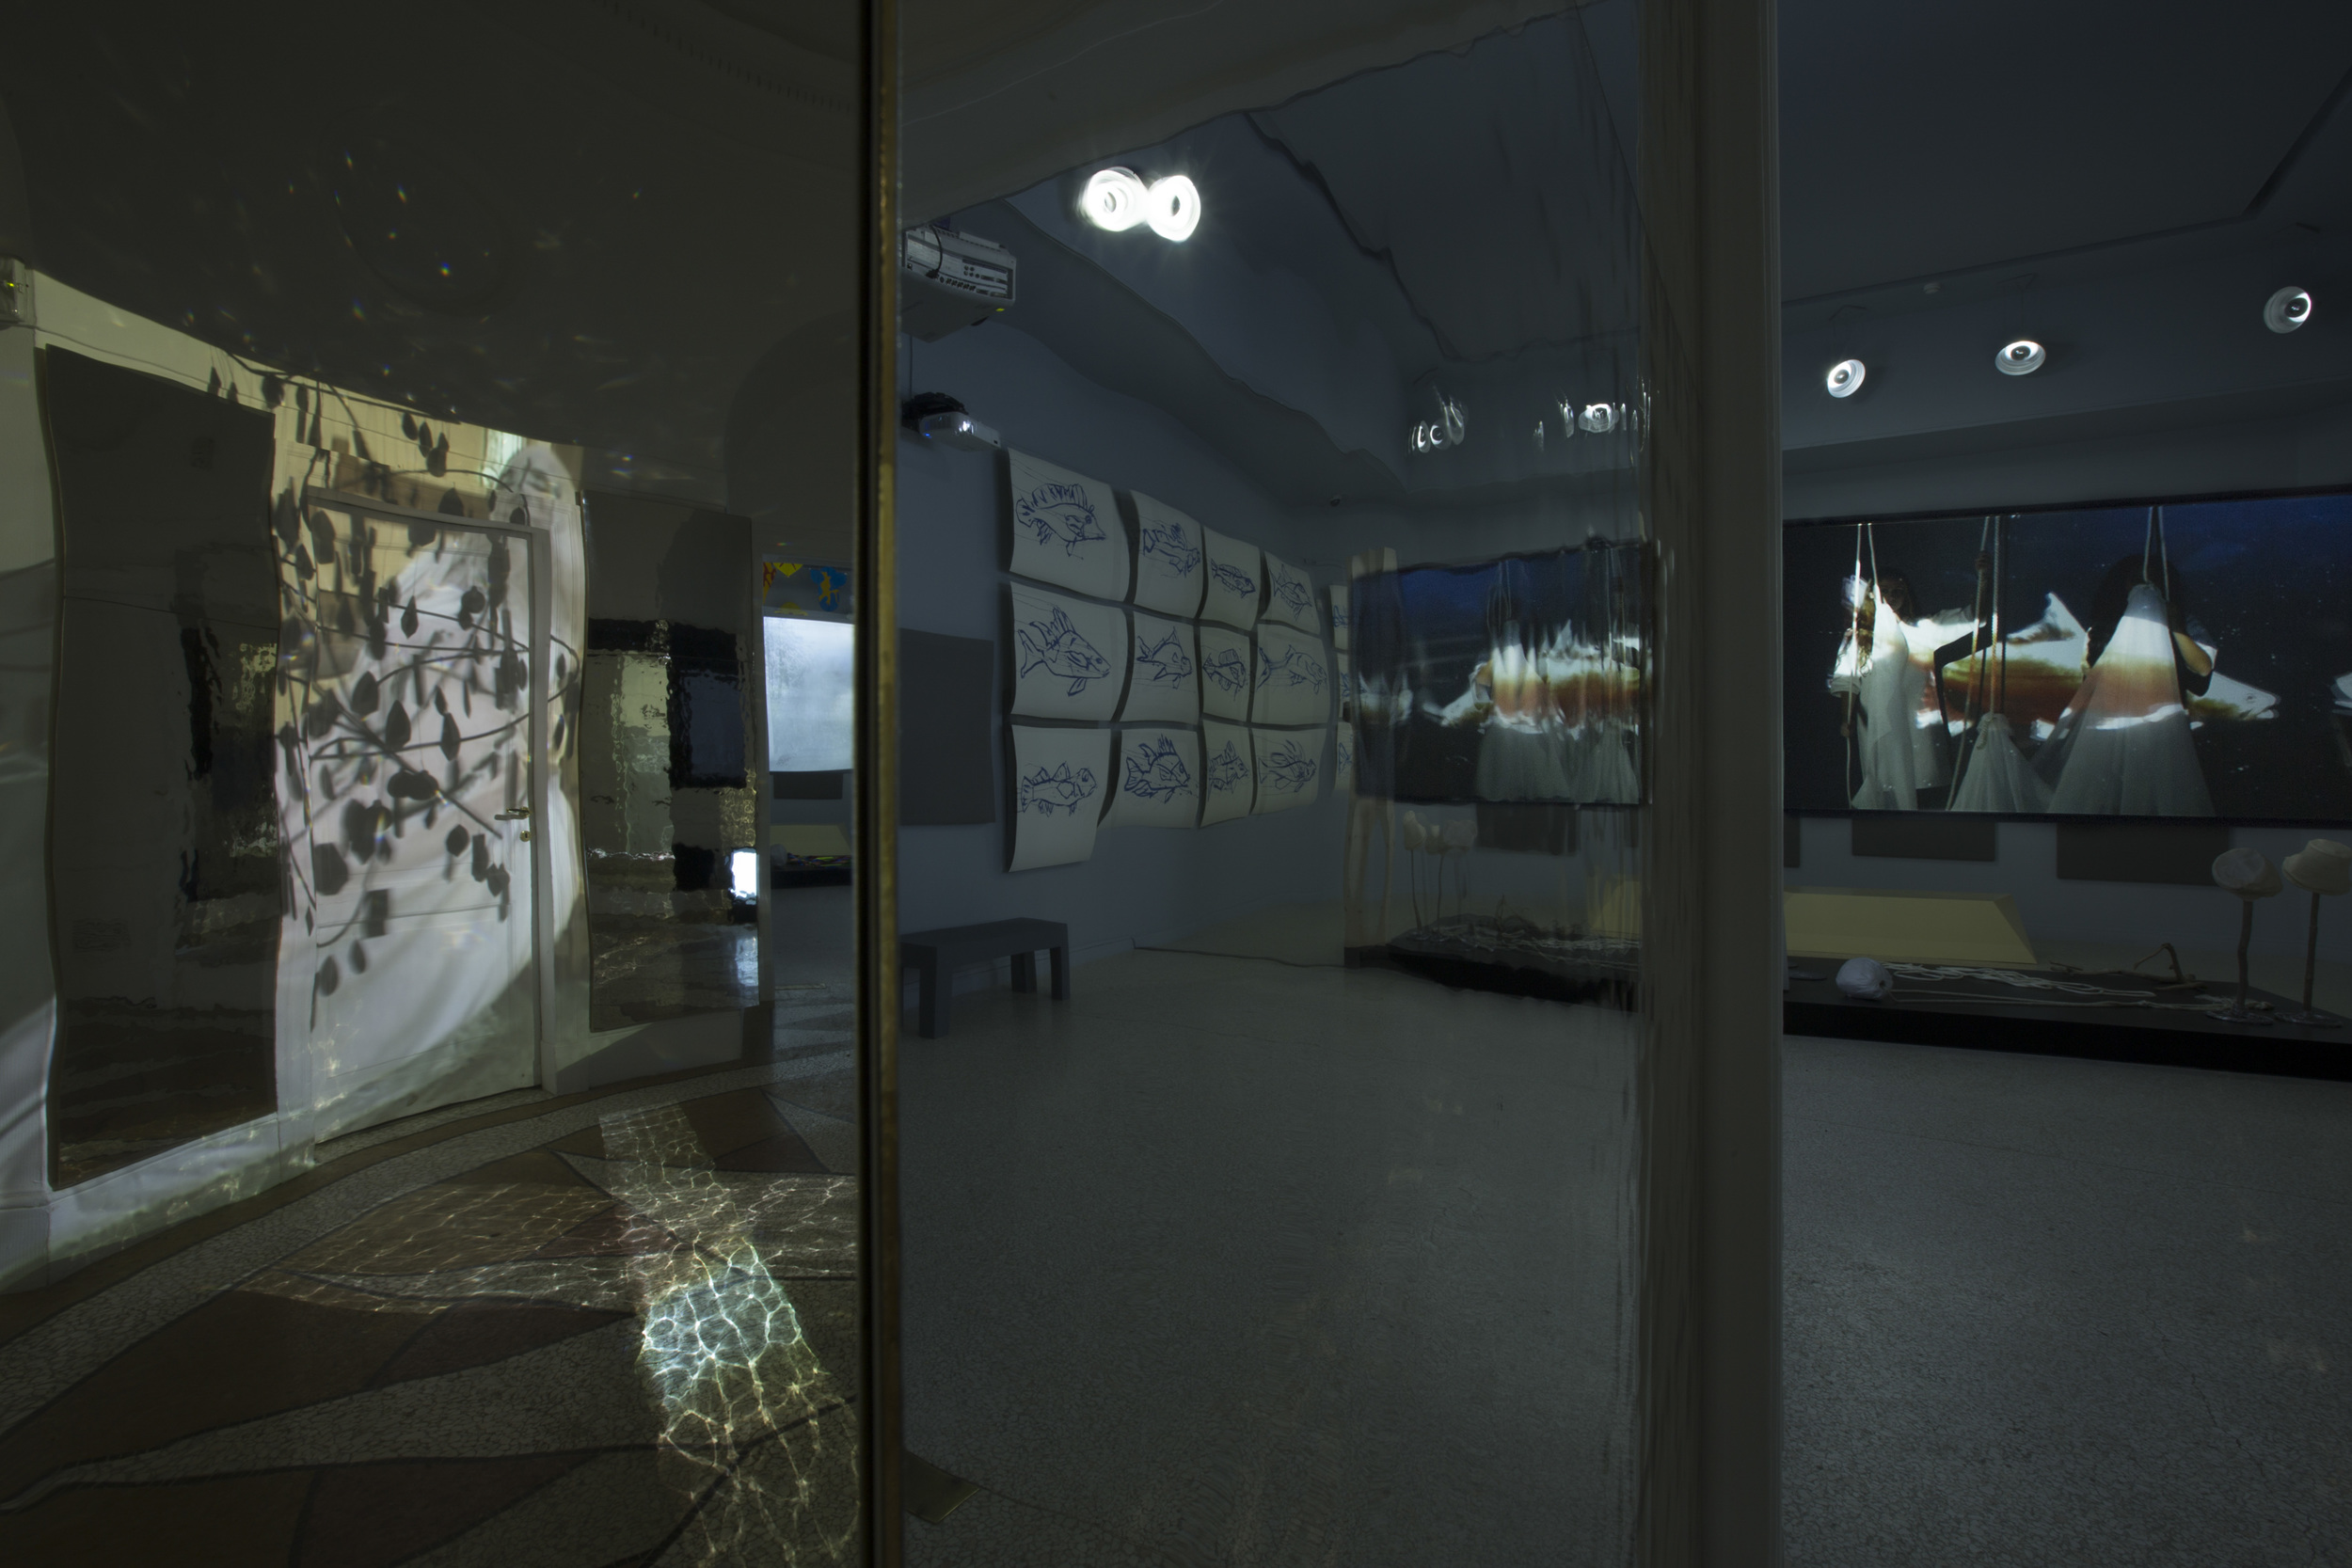 United States of America -Joan Jonas: They Come to Us Without a Word  Photo by Moira Ricci -Courtesy La Biennale di Venezia